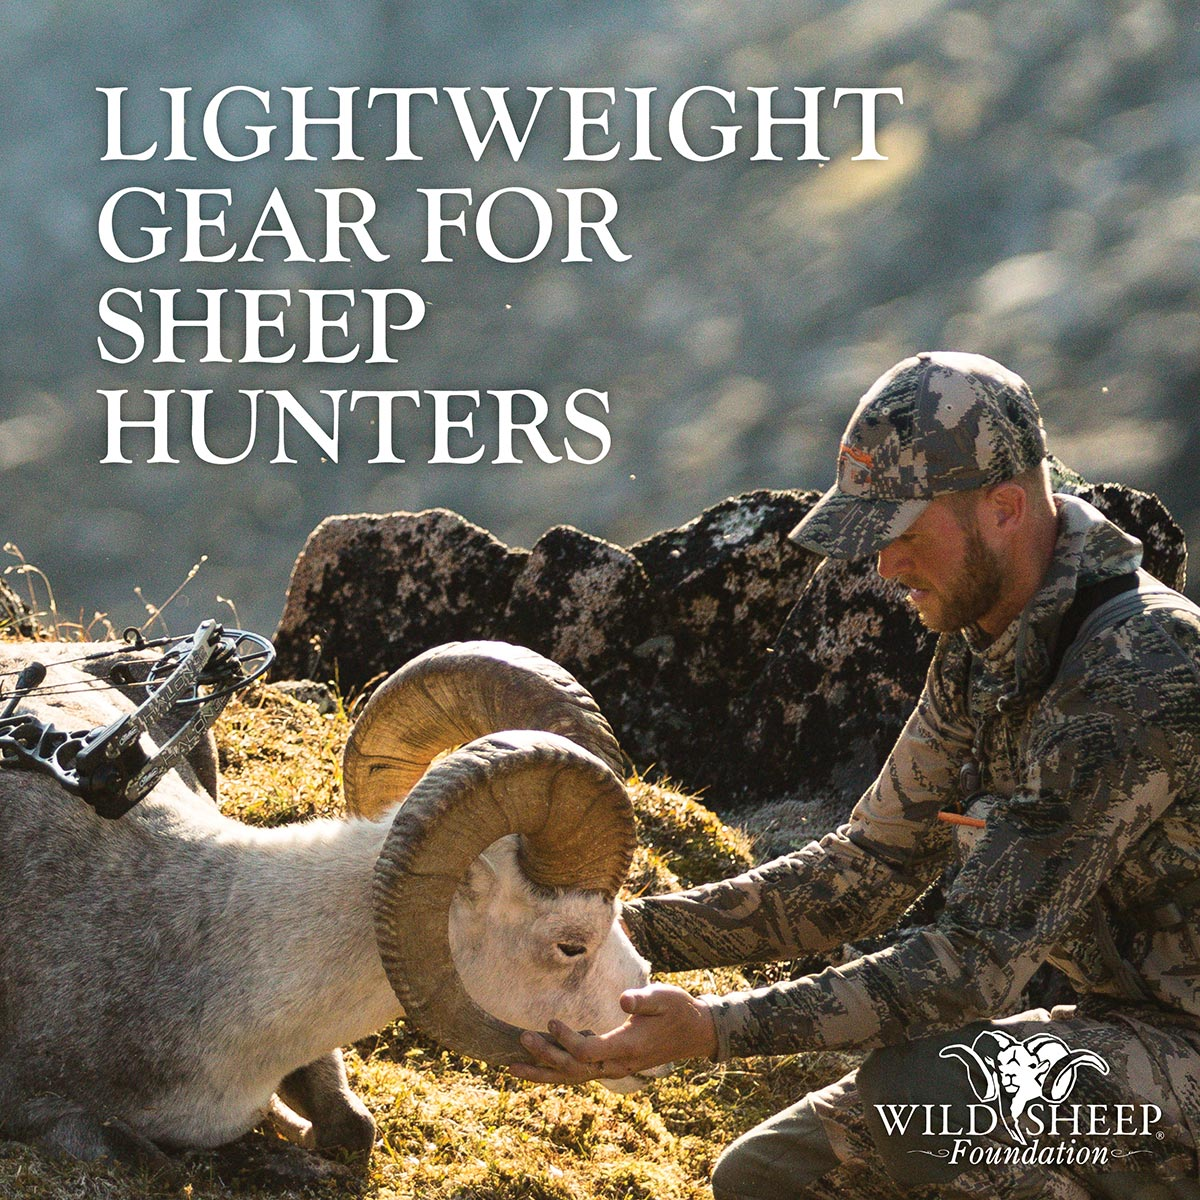 Lightweight Gear for Sheep Hunting